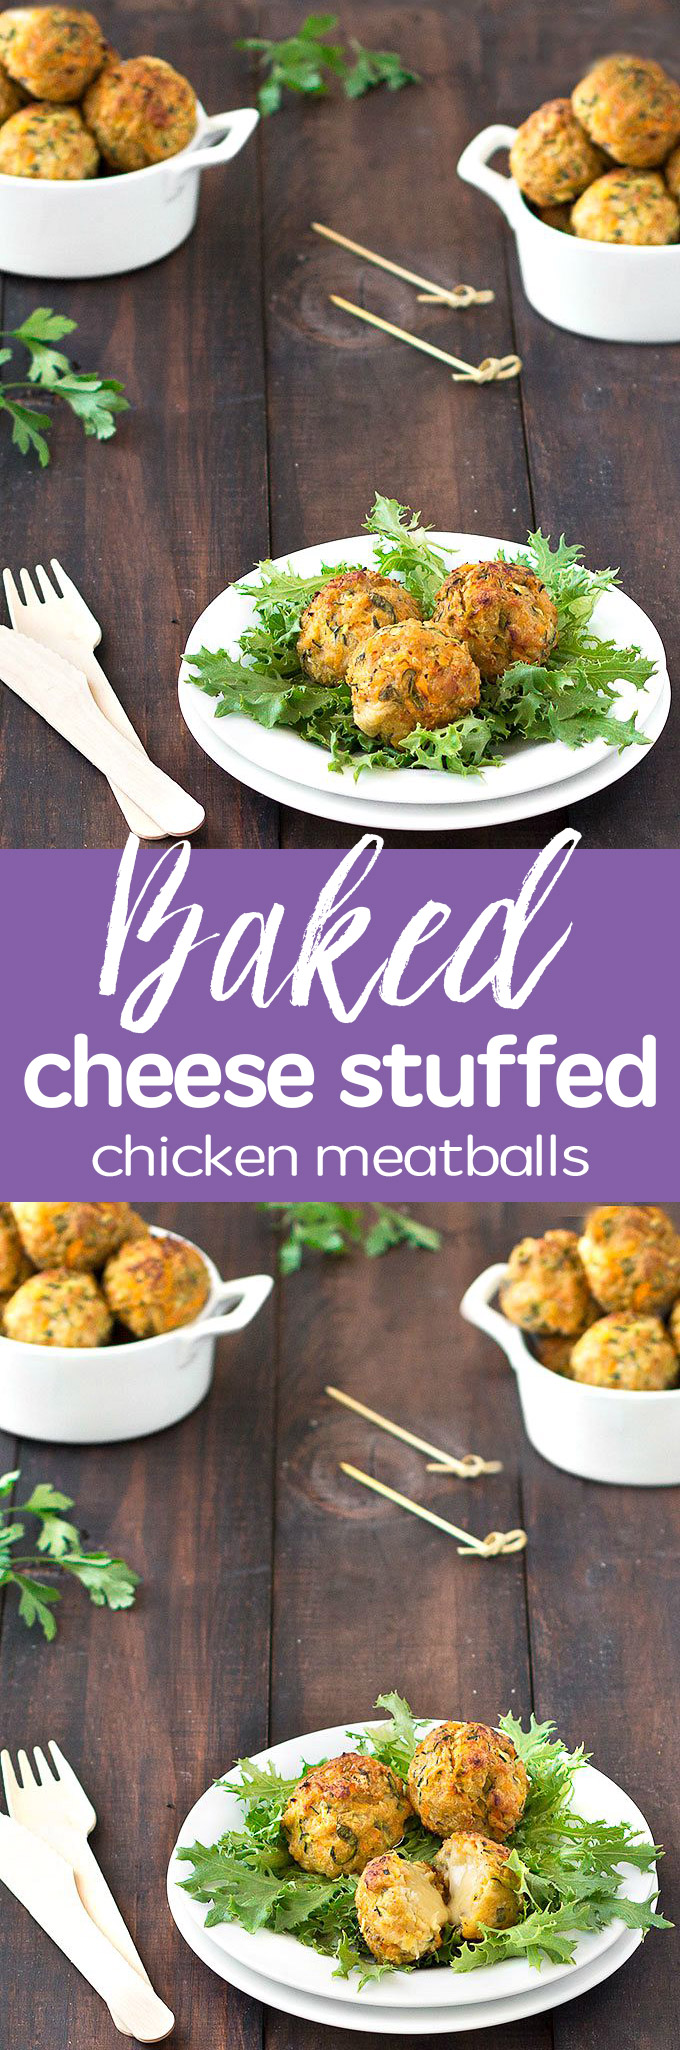 Baked cheese stuffed chicken meatballs: flavorful, easy to make, versatile and can be made in advance and frozen for quick weeknight meals.